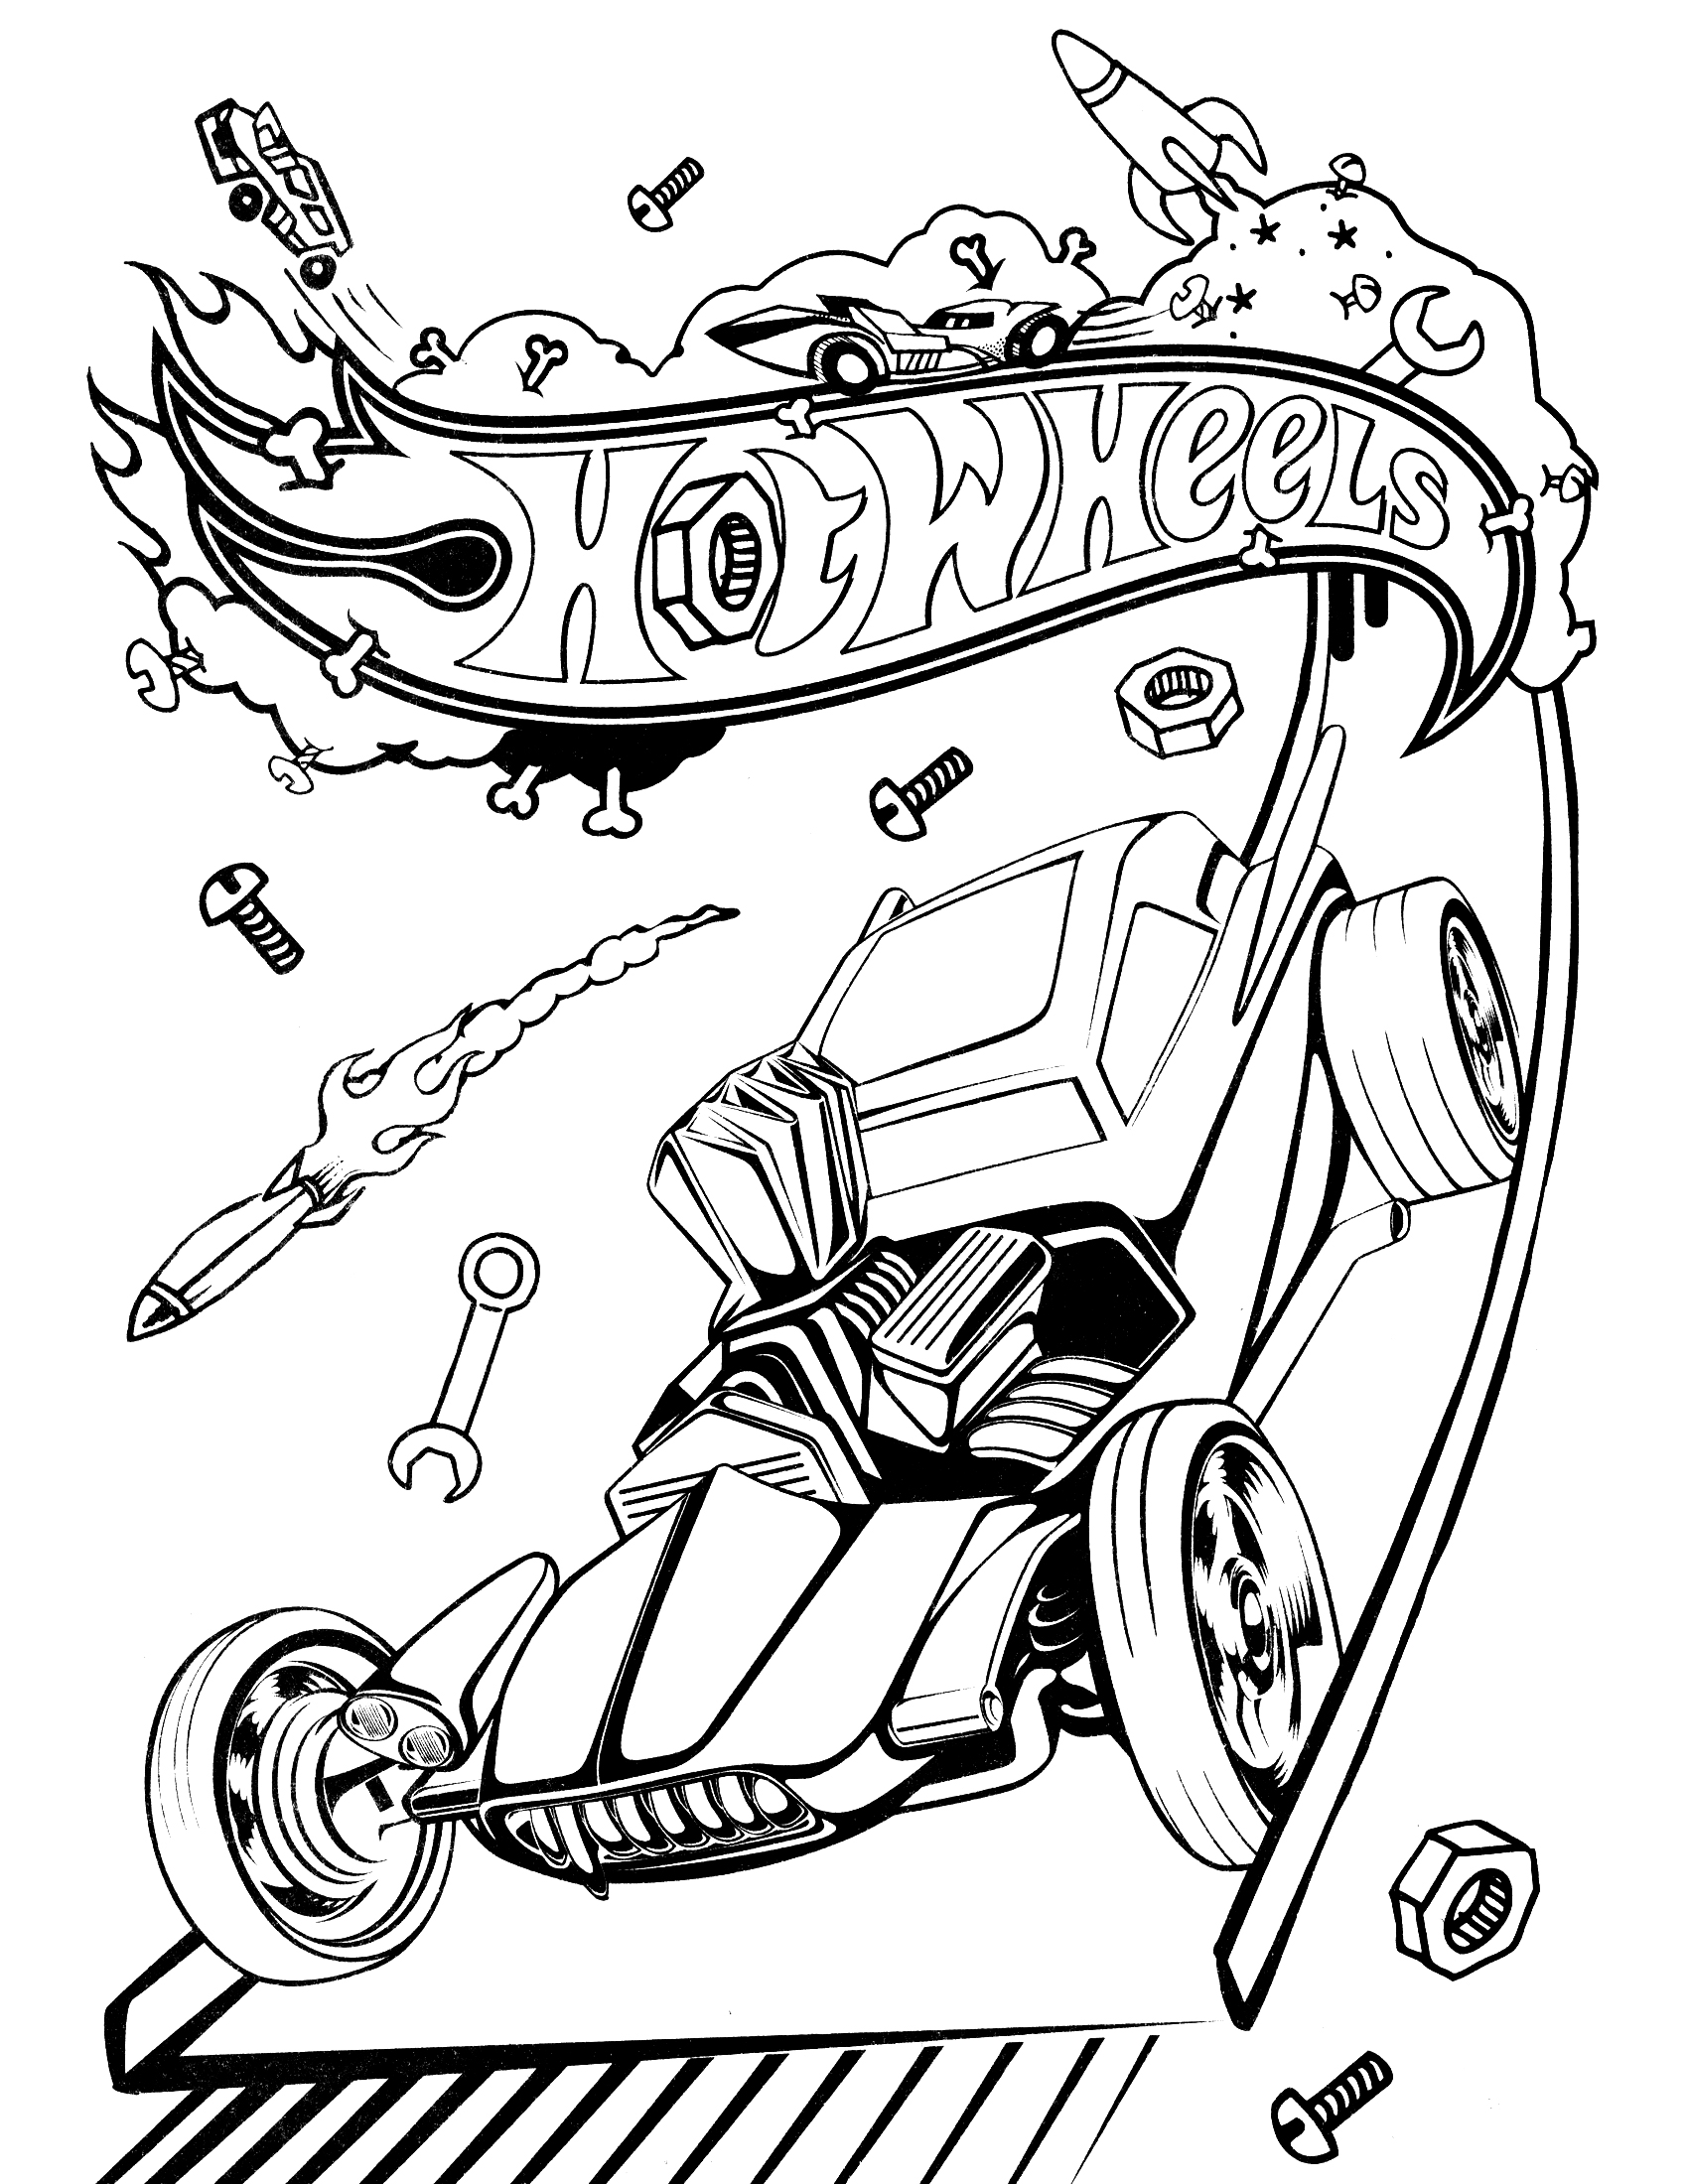 Coloring pages for hot wheels - Hot Wheel Coloring Page